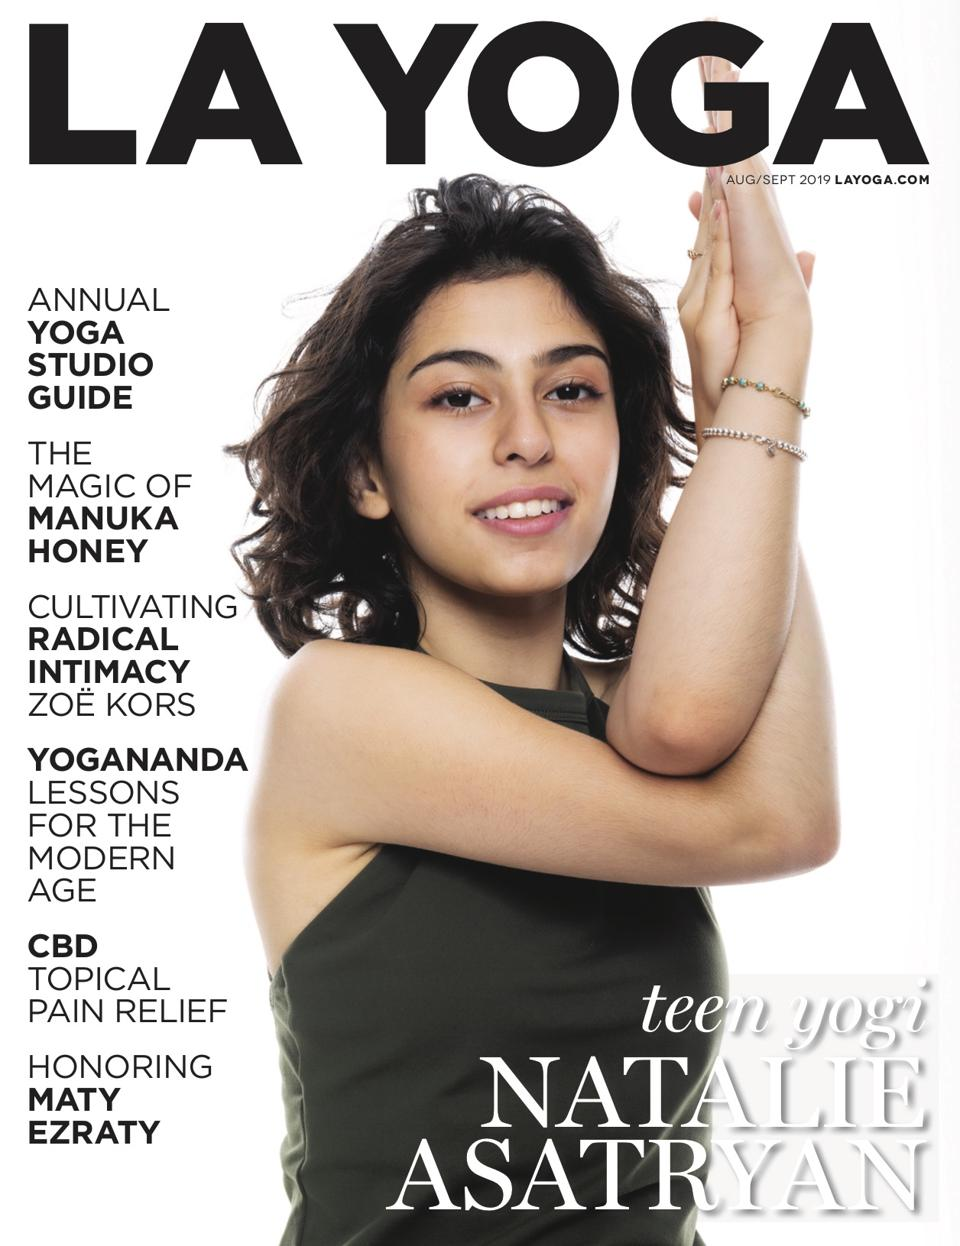 a teenage girl in a yoga pose on the cover of LA Yoga magazine